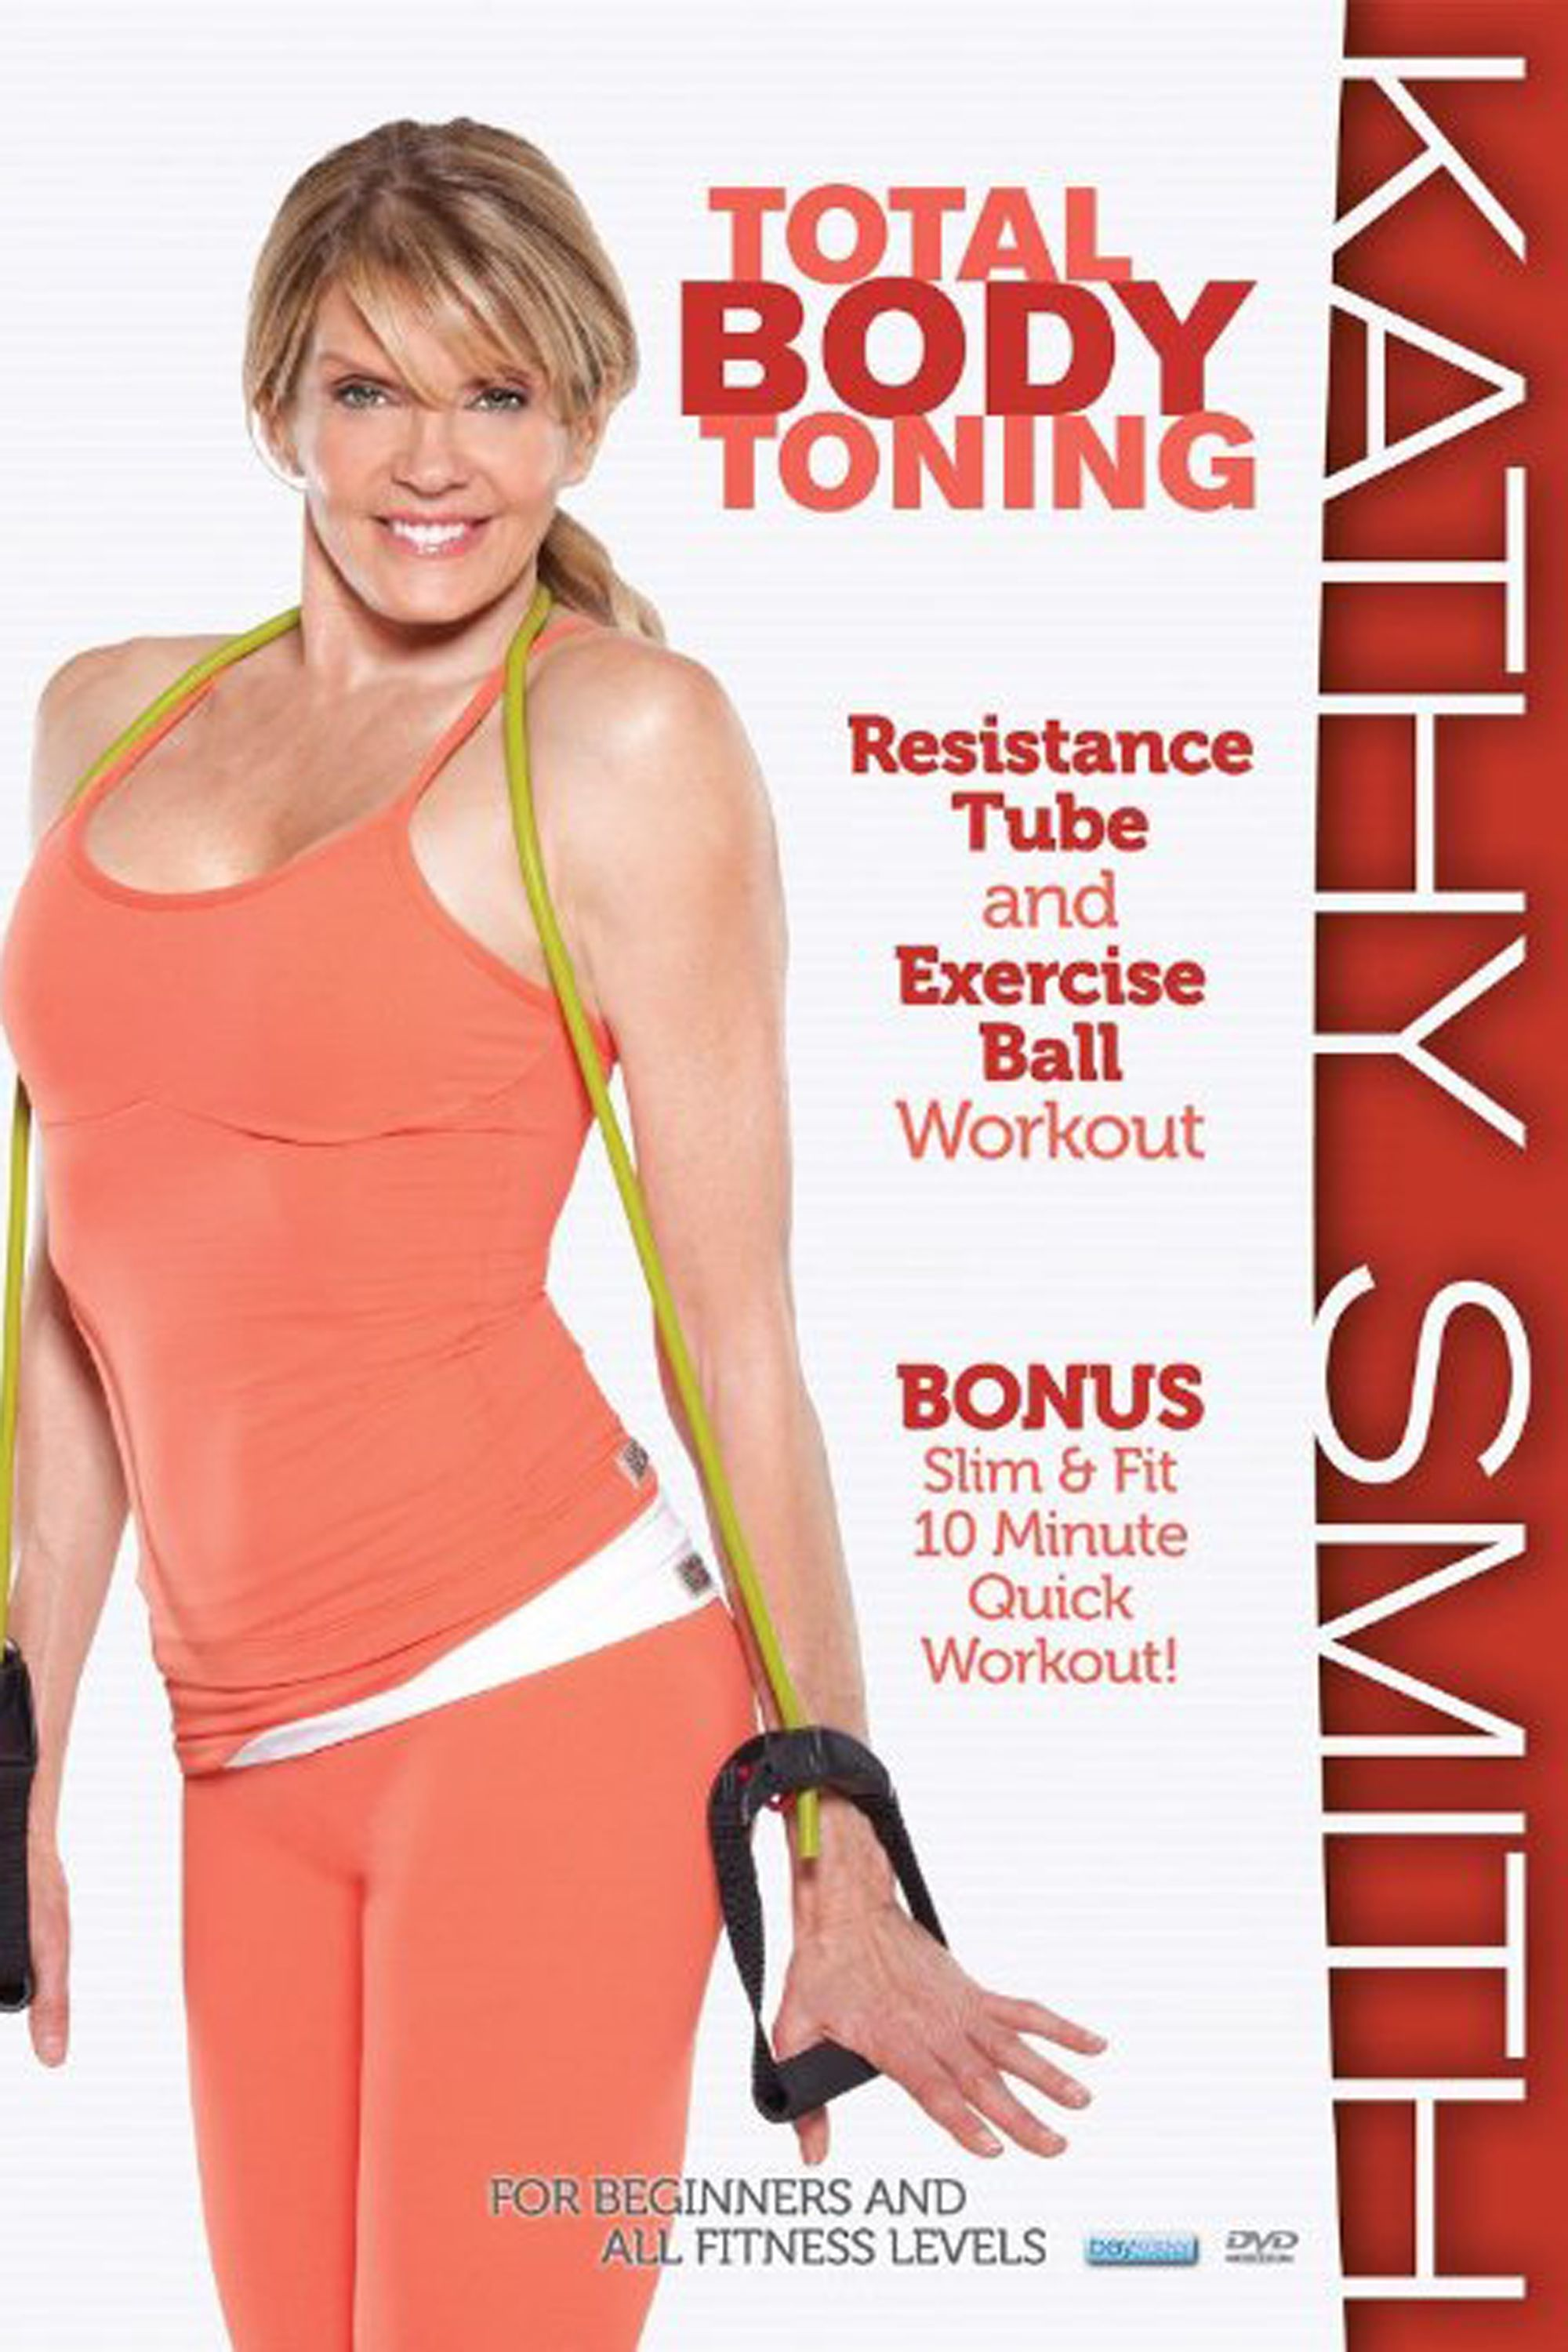 Best Workout DVDs - Kathy Smith: Total Body Toning